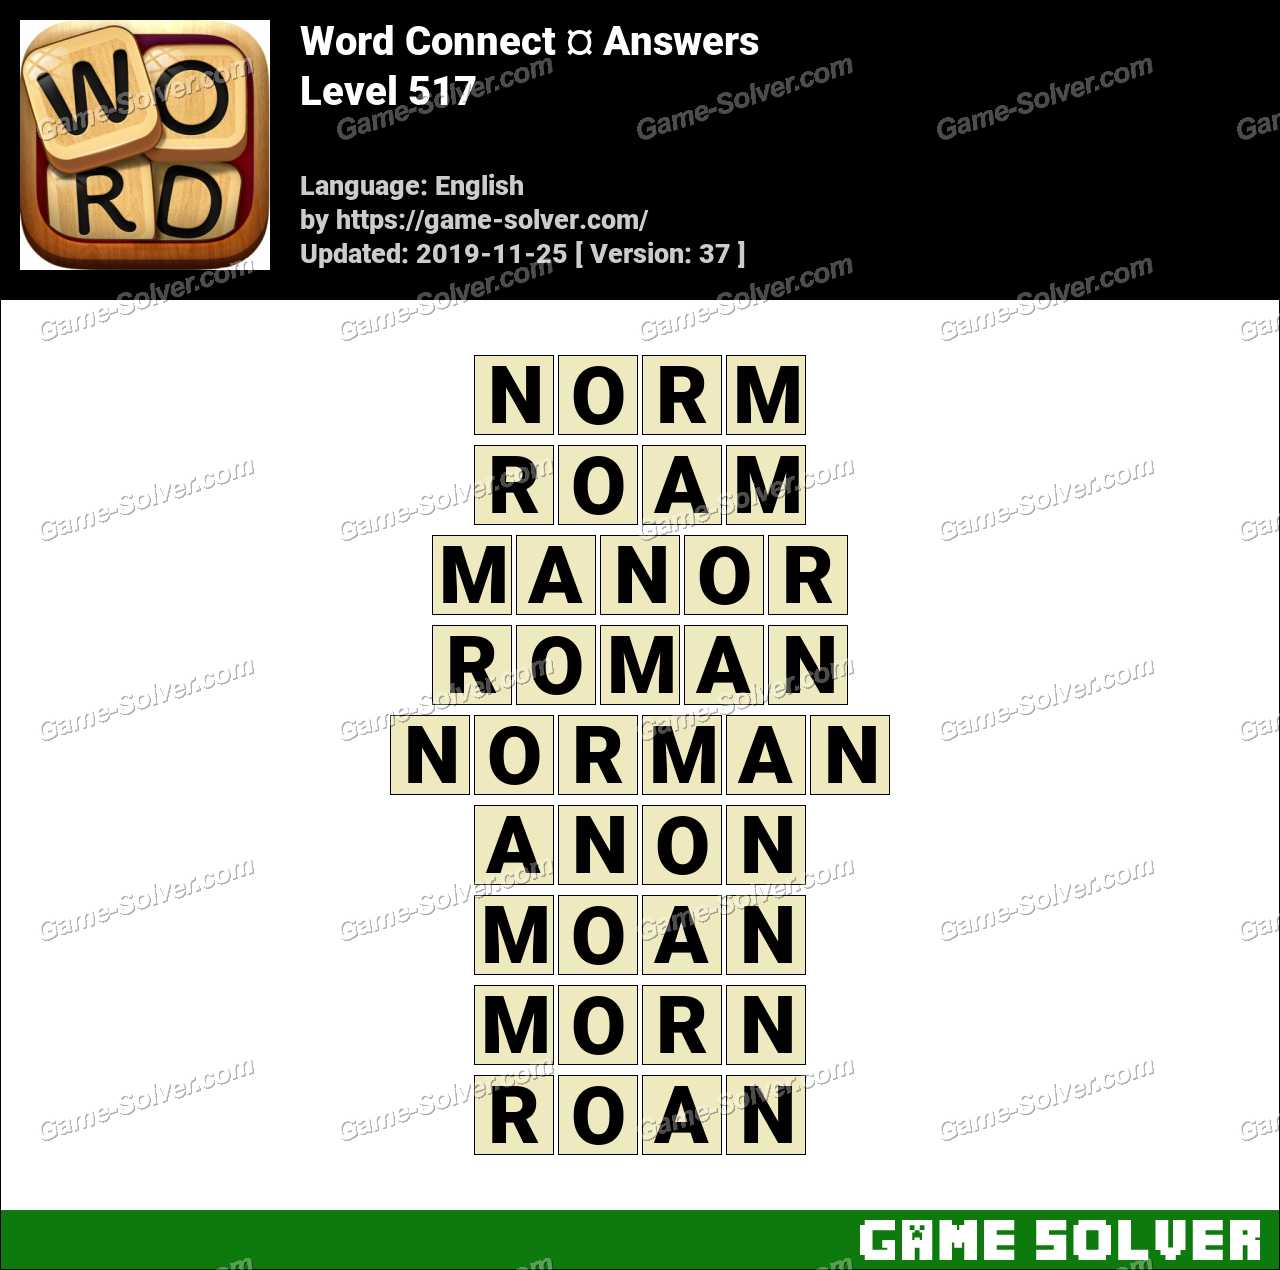 Word Connect Level 517 Answers